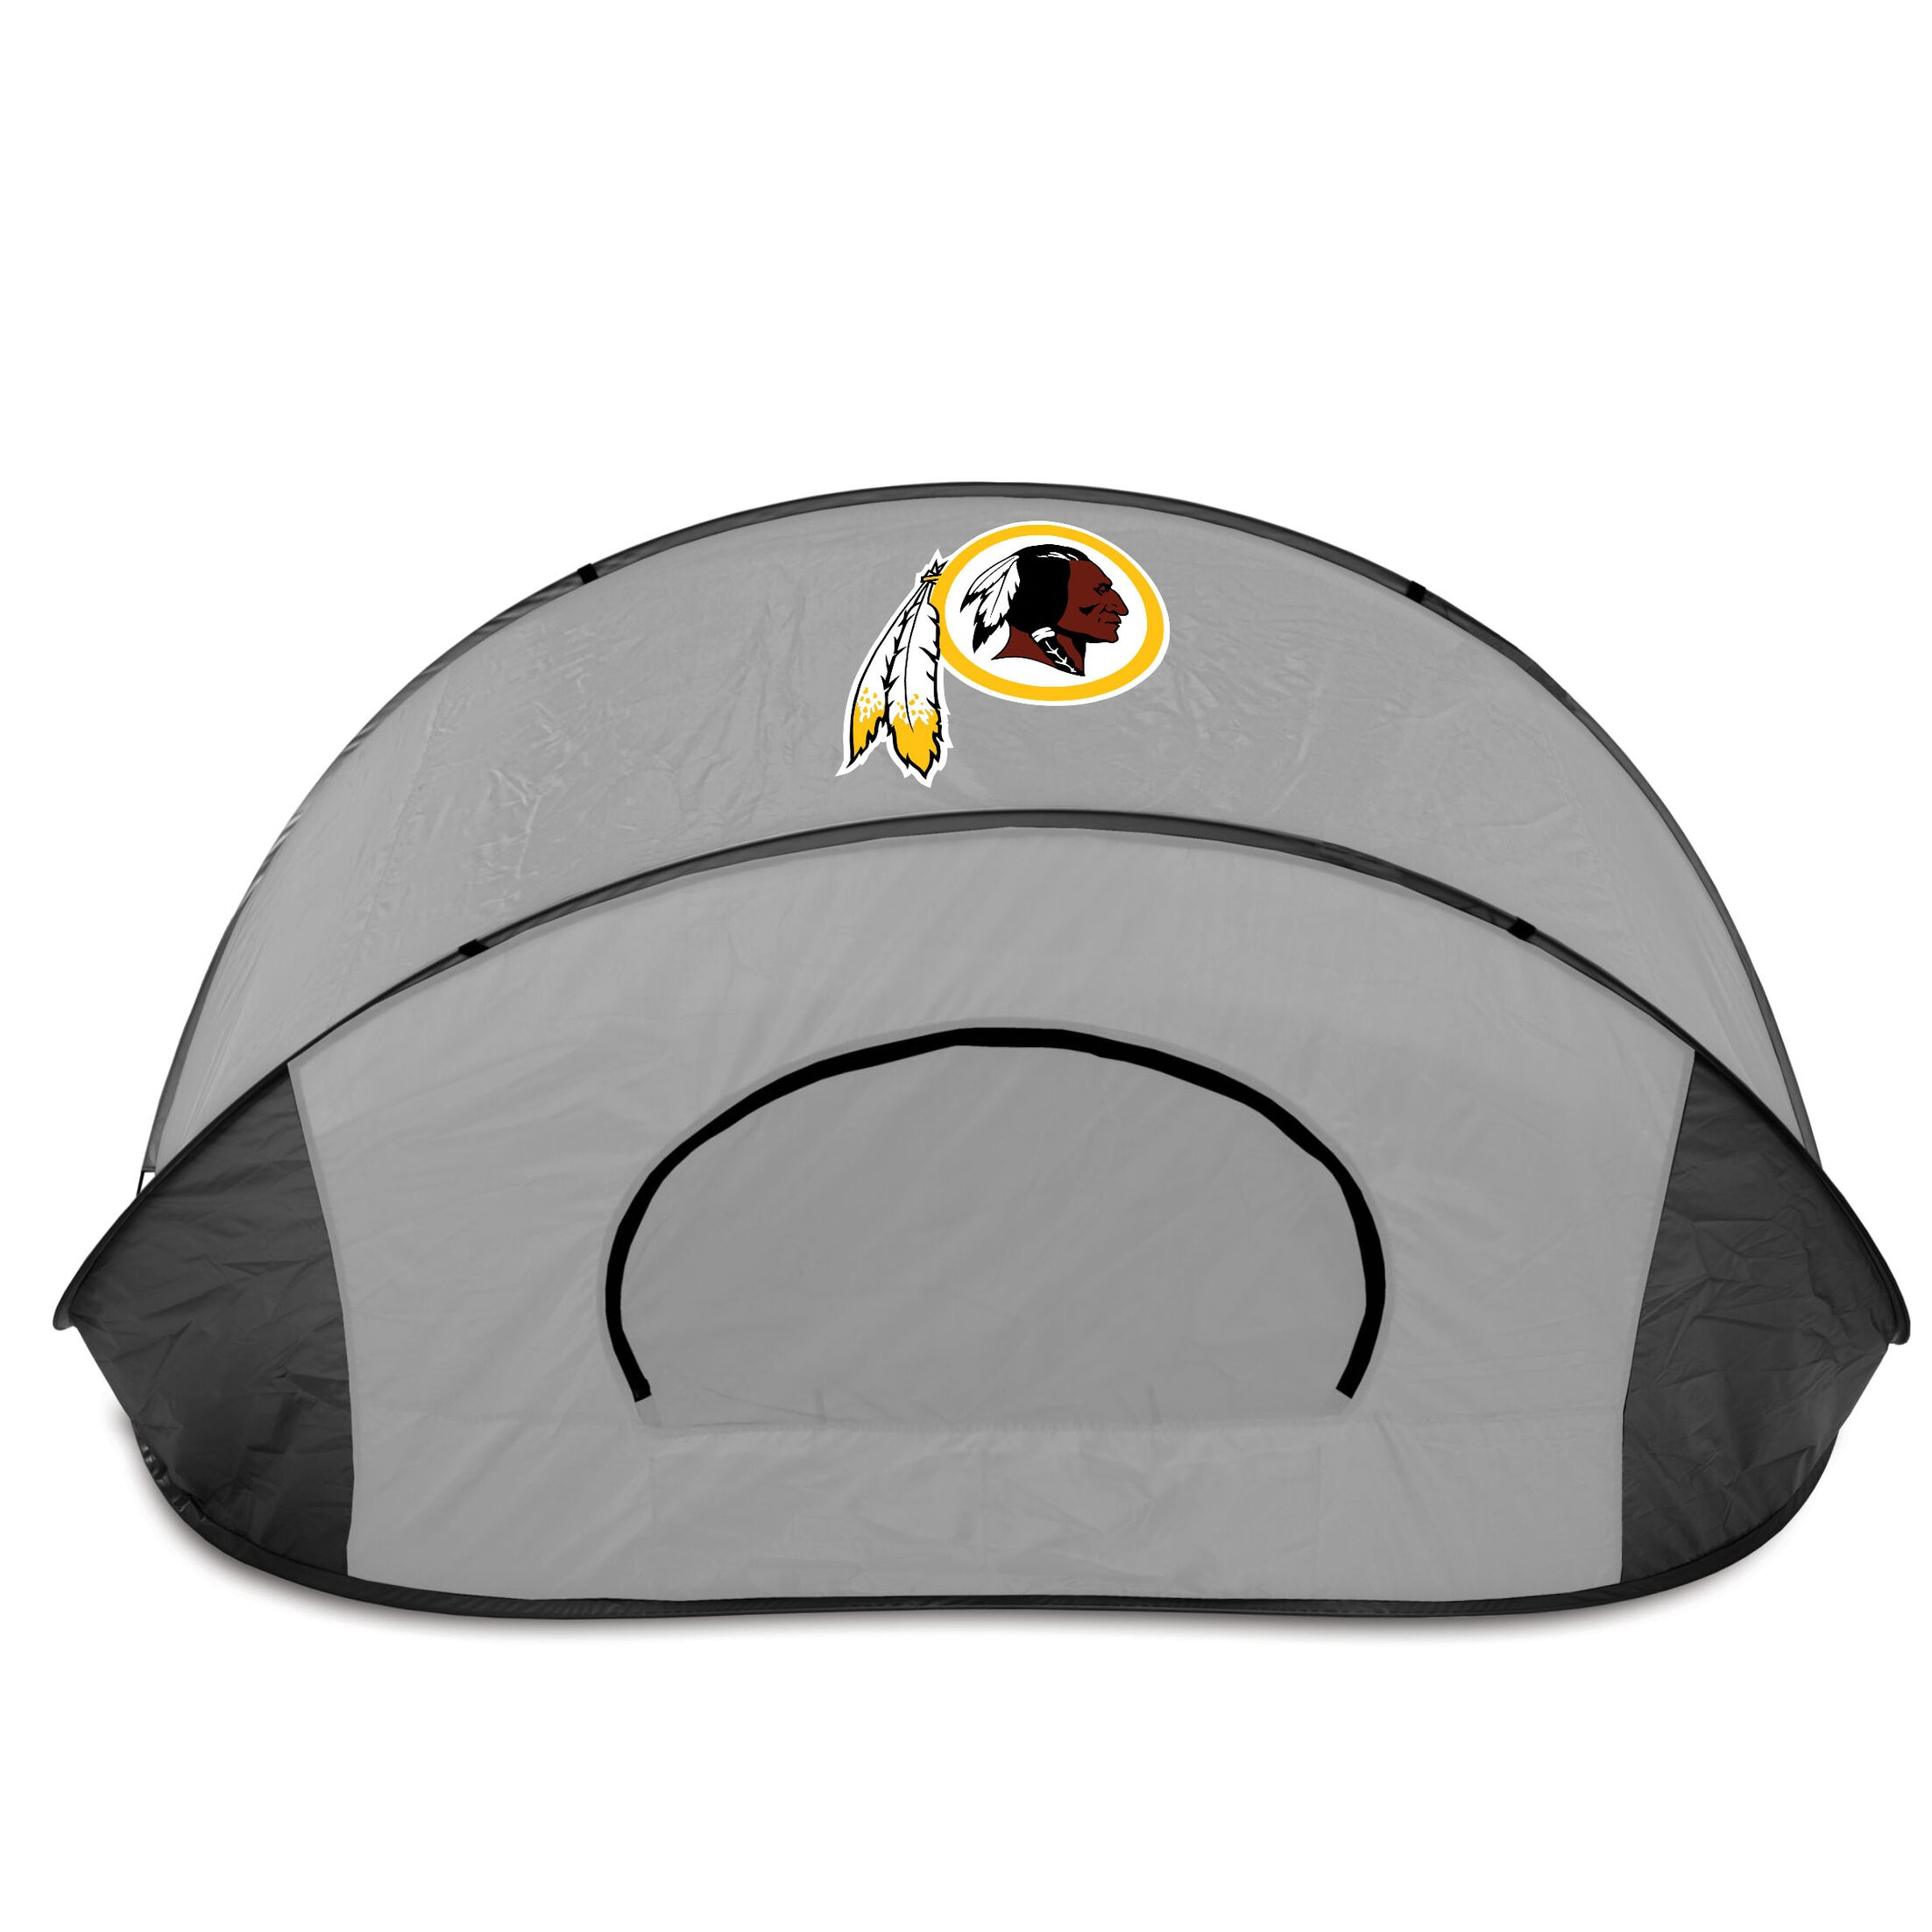 NFL Manta Shelter Color: Black / Grey, NFL Team: Washington Redskins